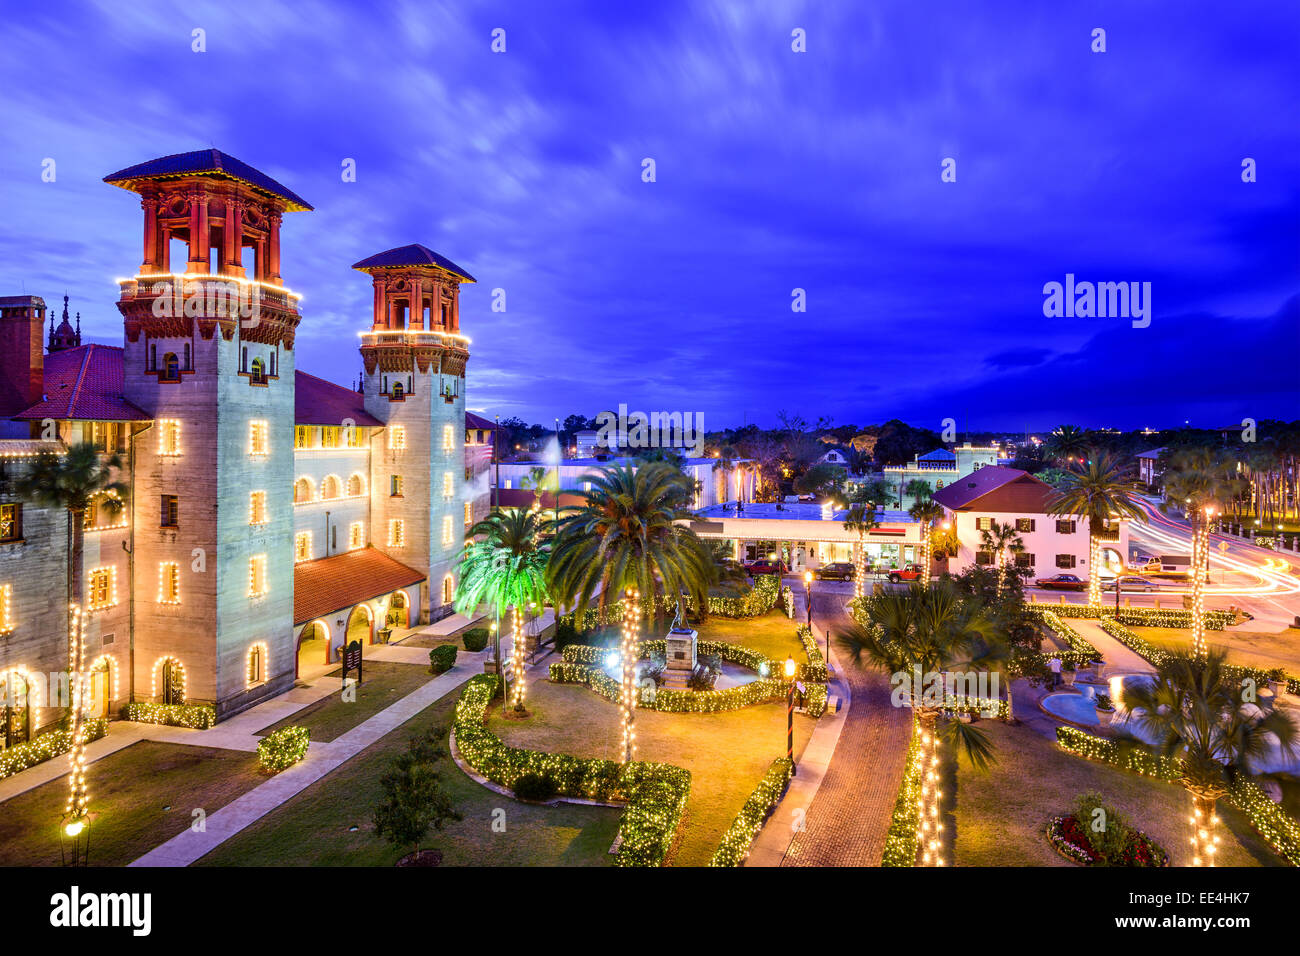 St. Augustine, Florida, USA townscape over Alcazar Courtyard. - Stock Image